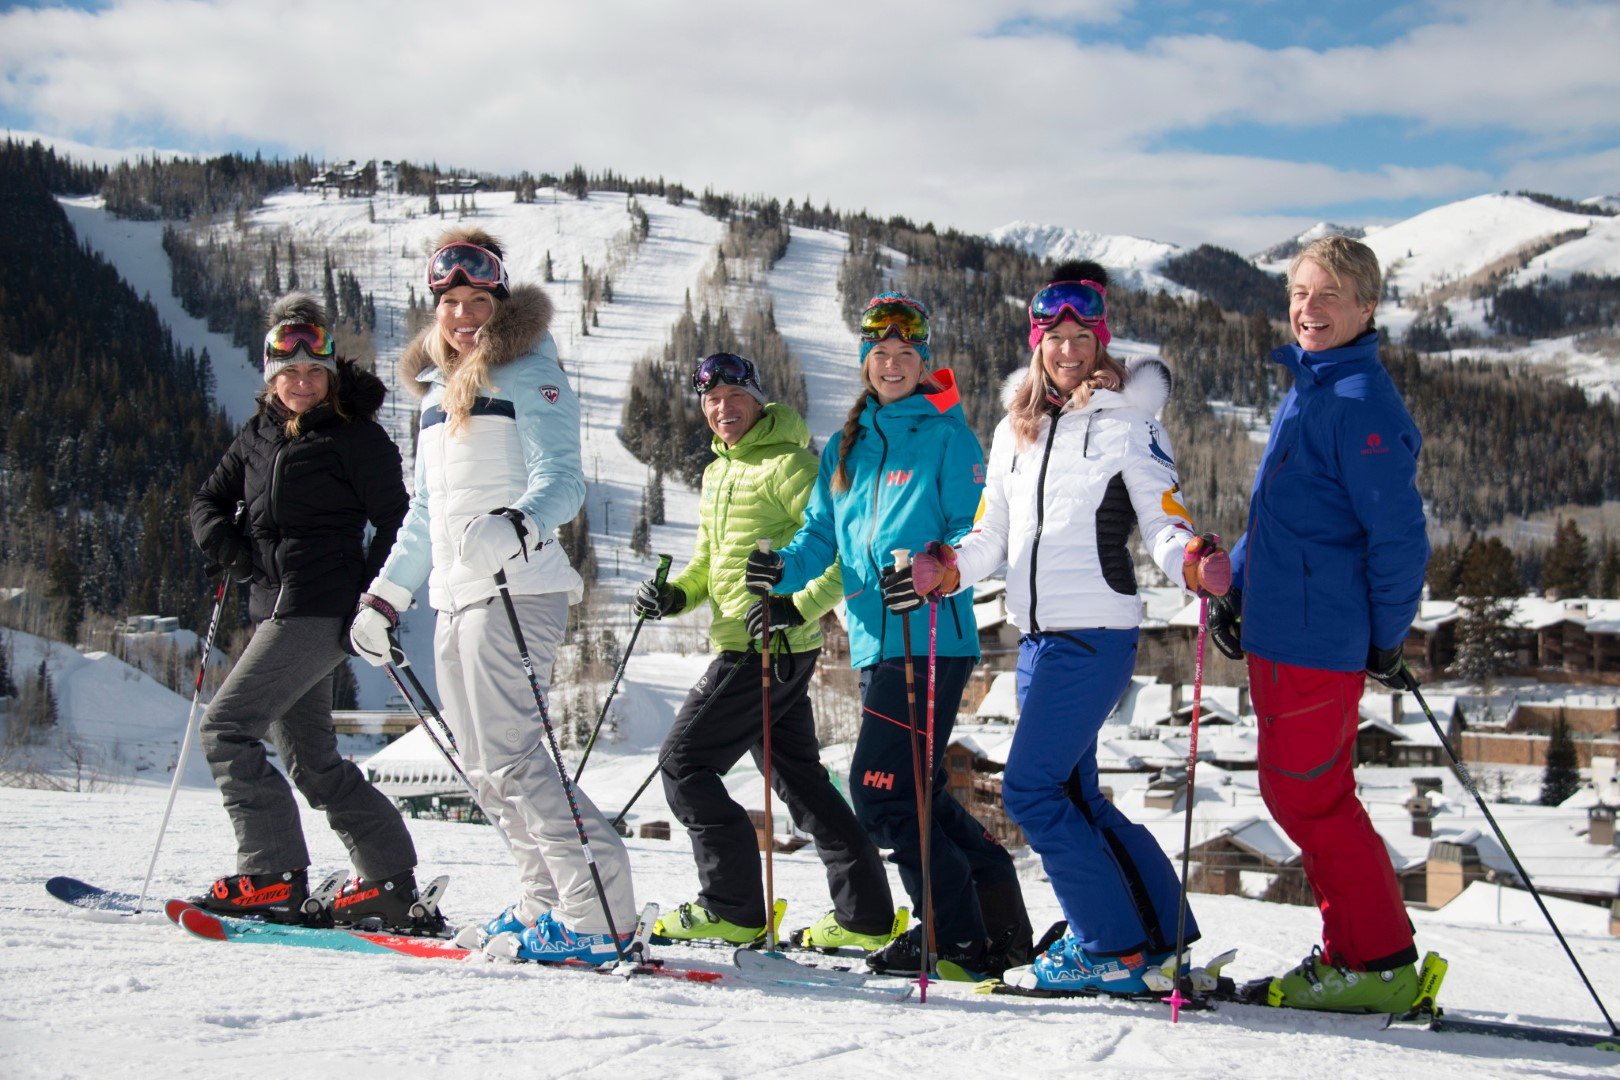 At the Deer Valley Resort near Park City, you can spend a whole or half day skiing with one of these Olympians. Photo by Eric Schramm courtesy Deer Valley Resort.